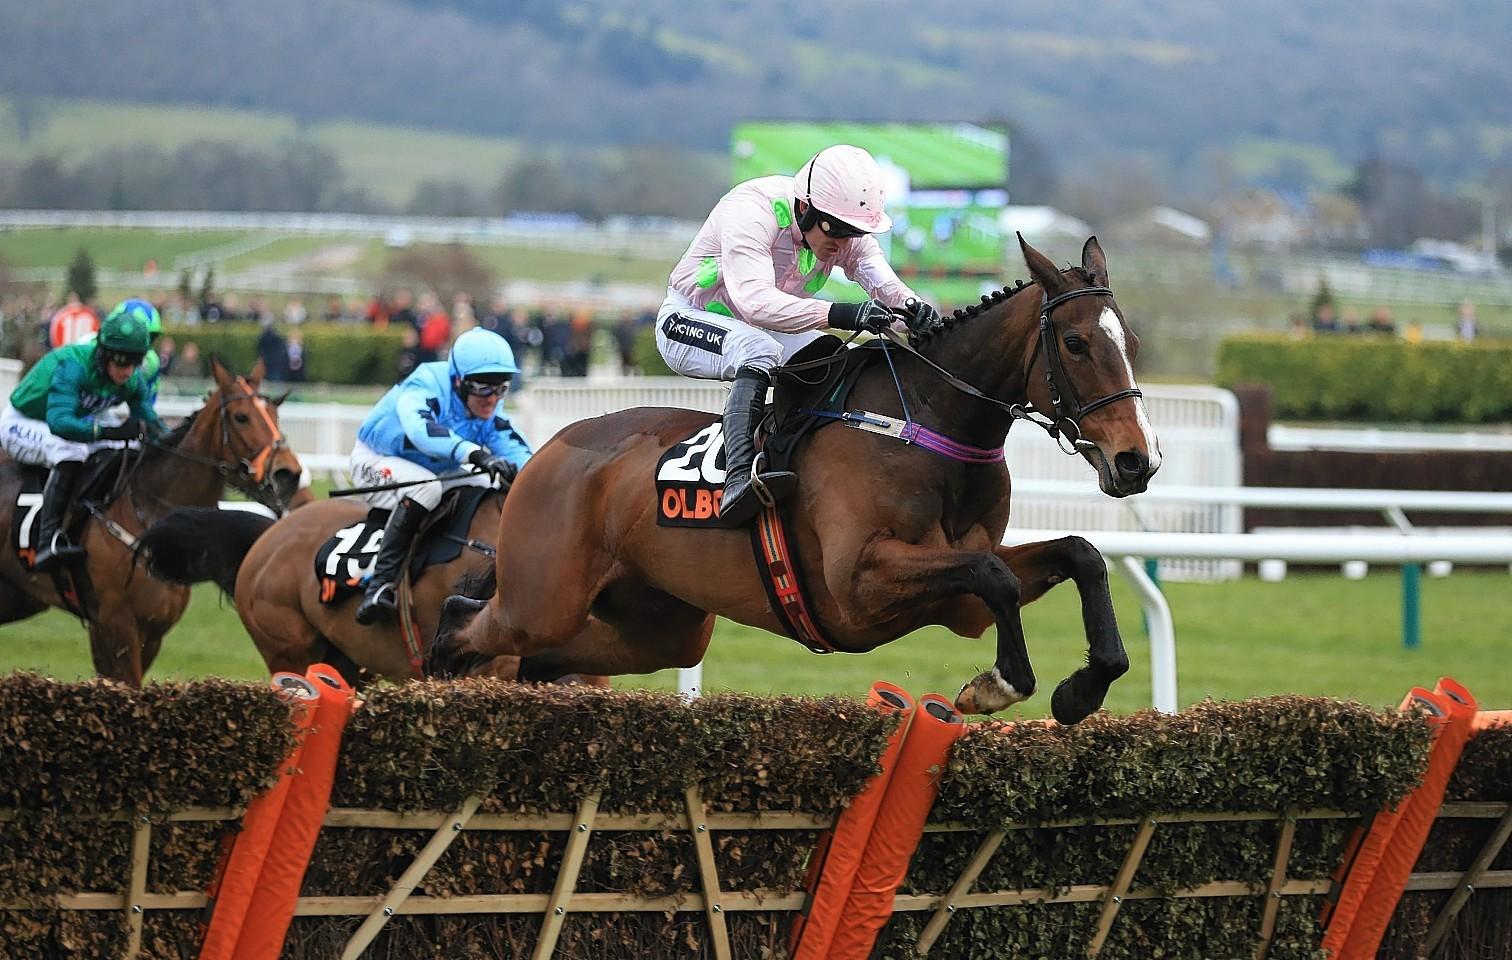 Vroum Vroum Mag ridden by Ruby Walsh jumps the last fence on the way to winning the OLBG Mares' Hurdle during day one of the 2016 Cheltenham Festival